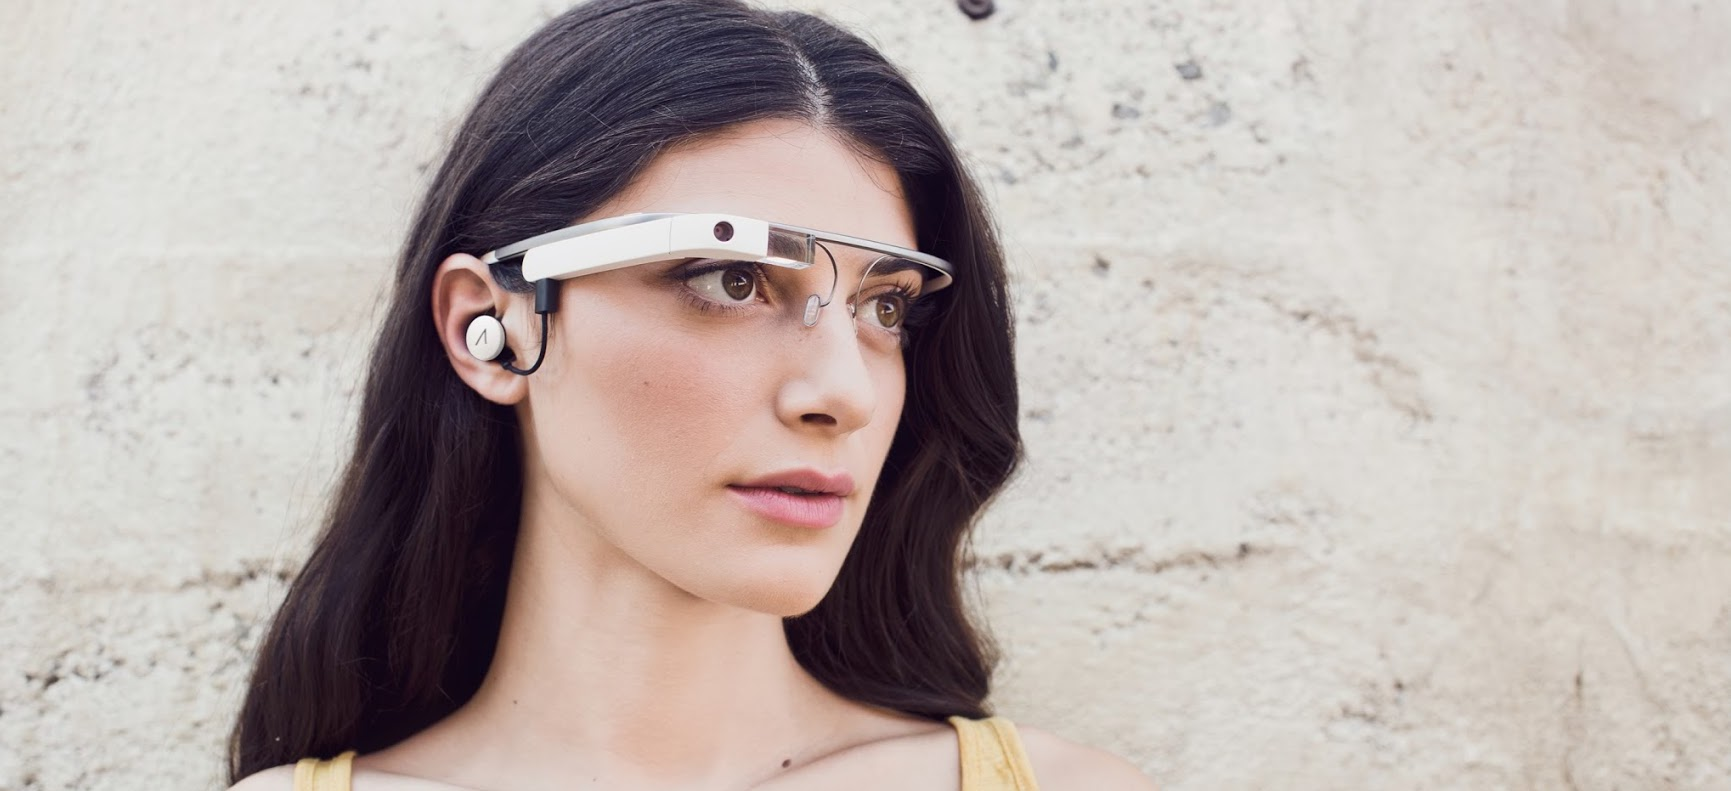 Google Invites Developers To Purchase Google Glass